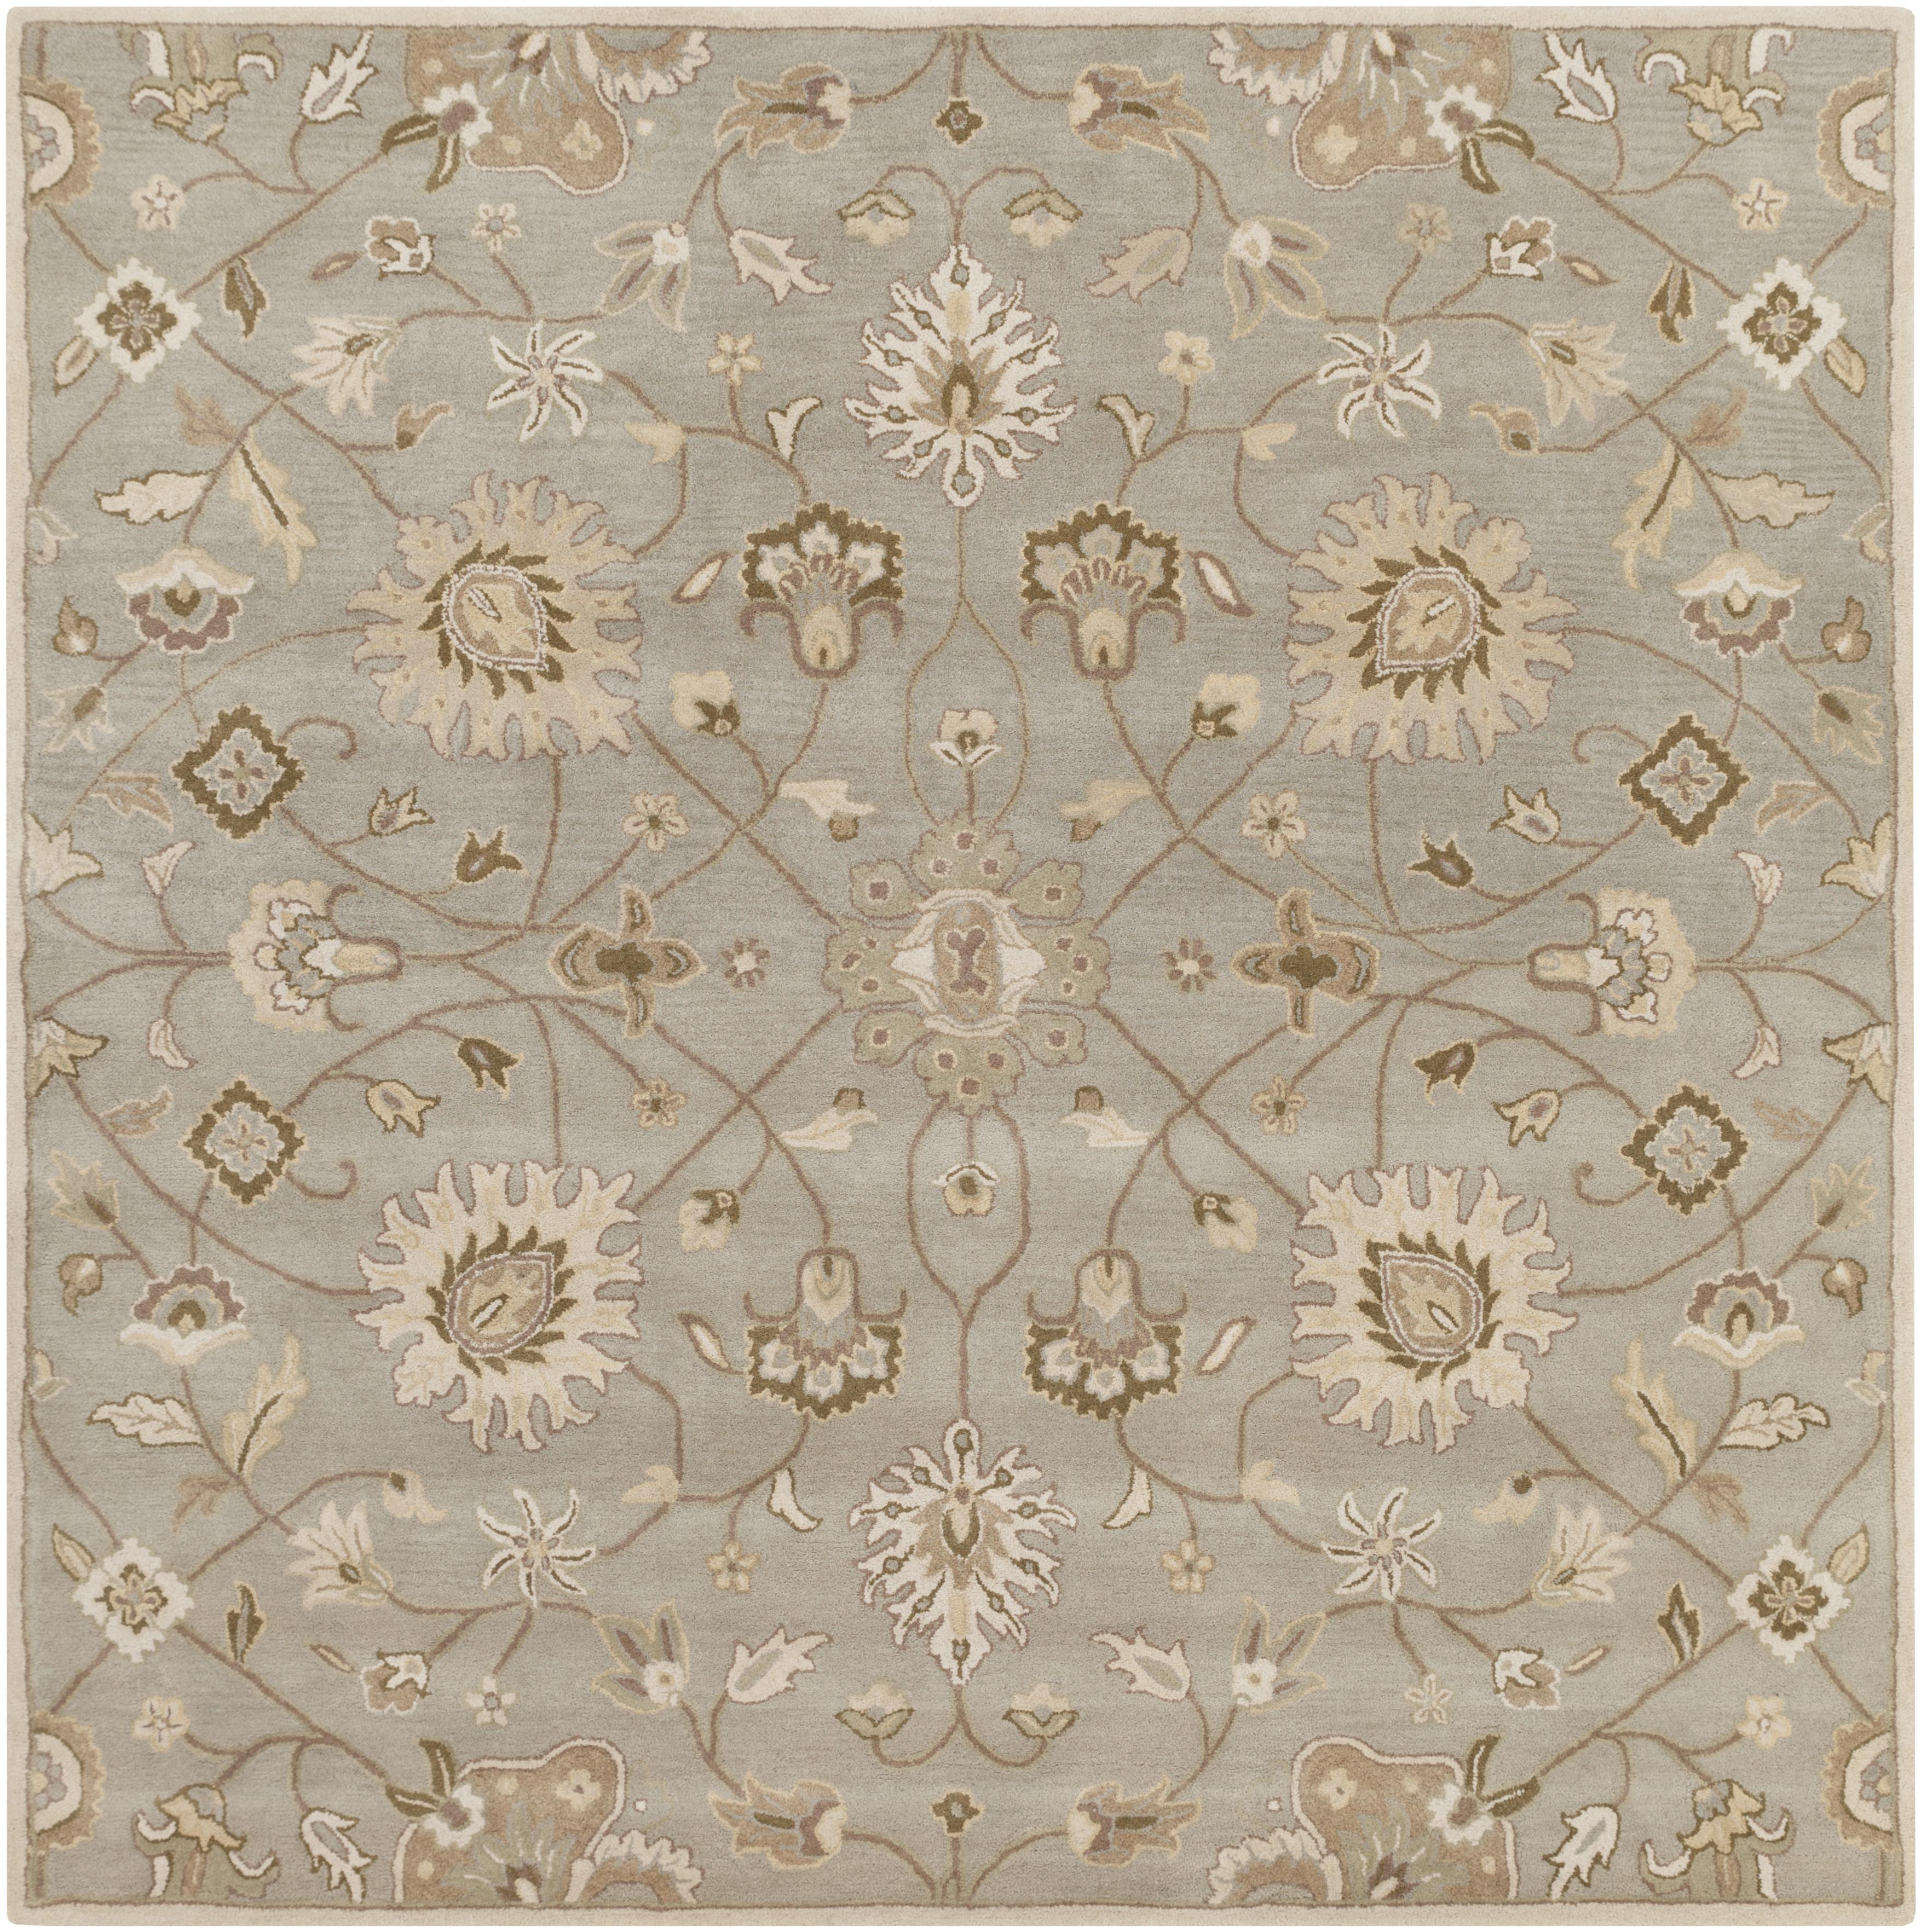 Oriental Rugs Hagerstown Md: 8' Square By Surya